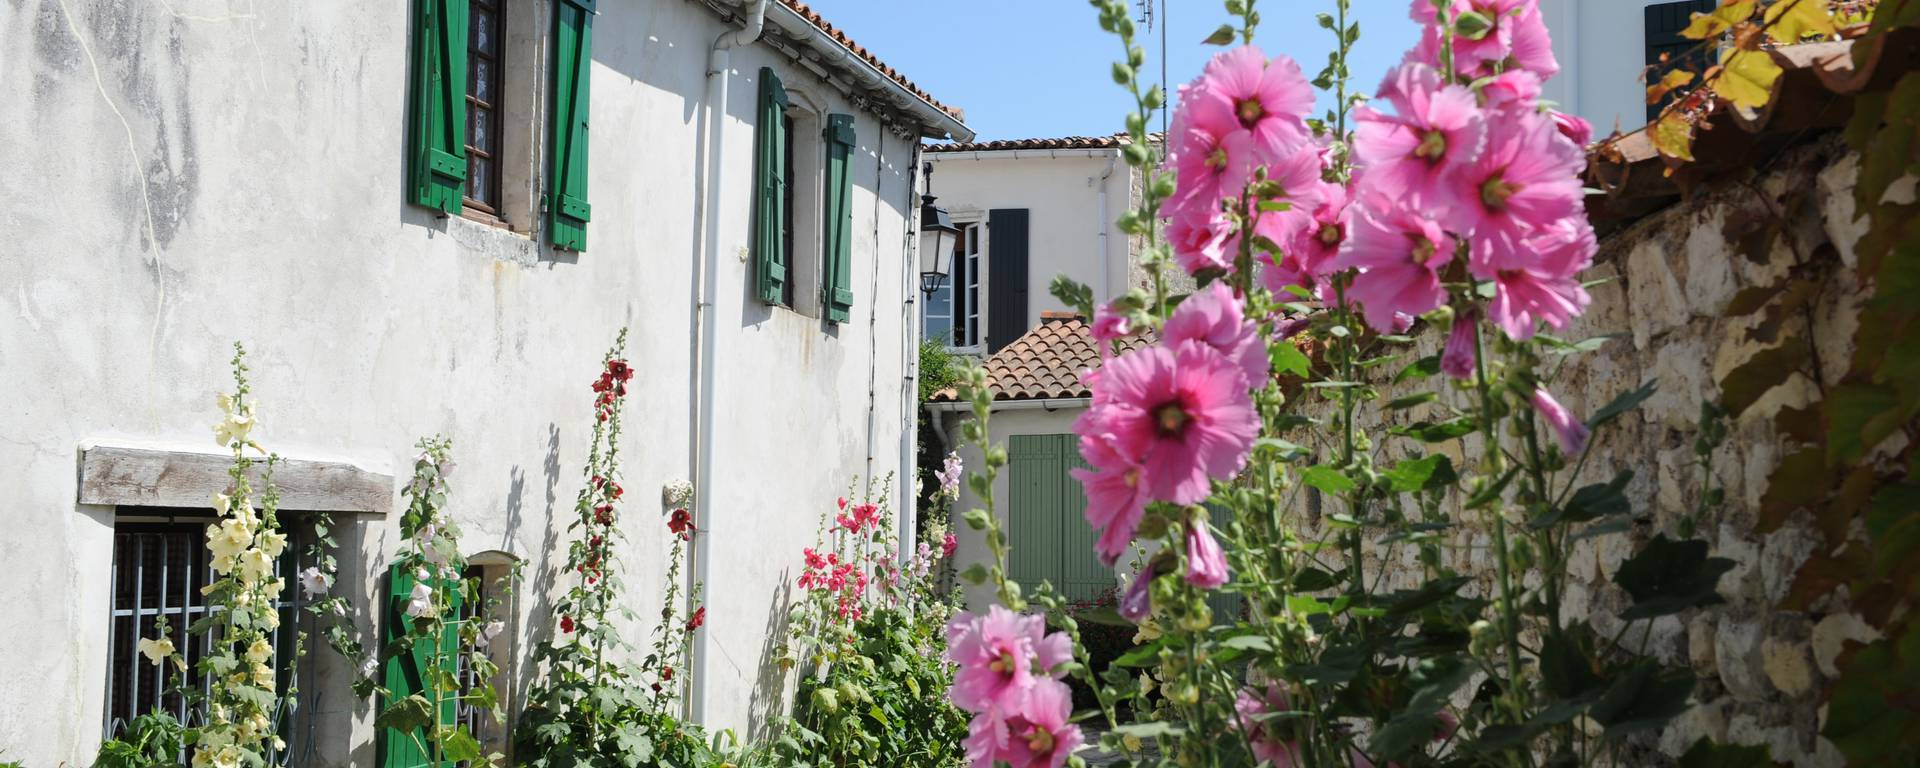 small alleys and hollyhocks